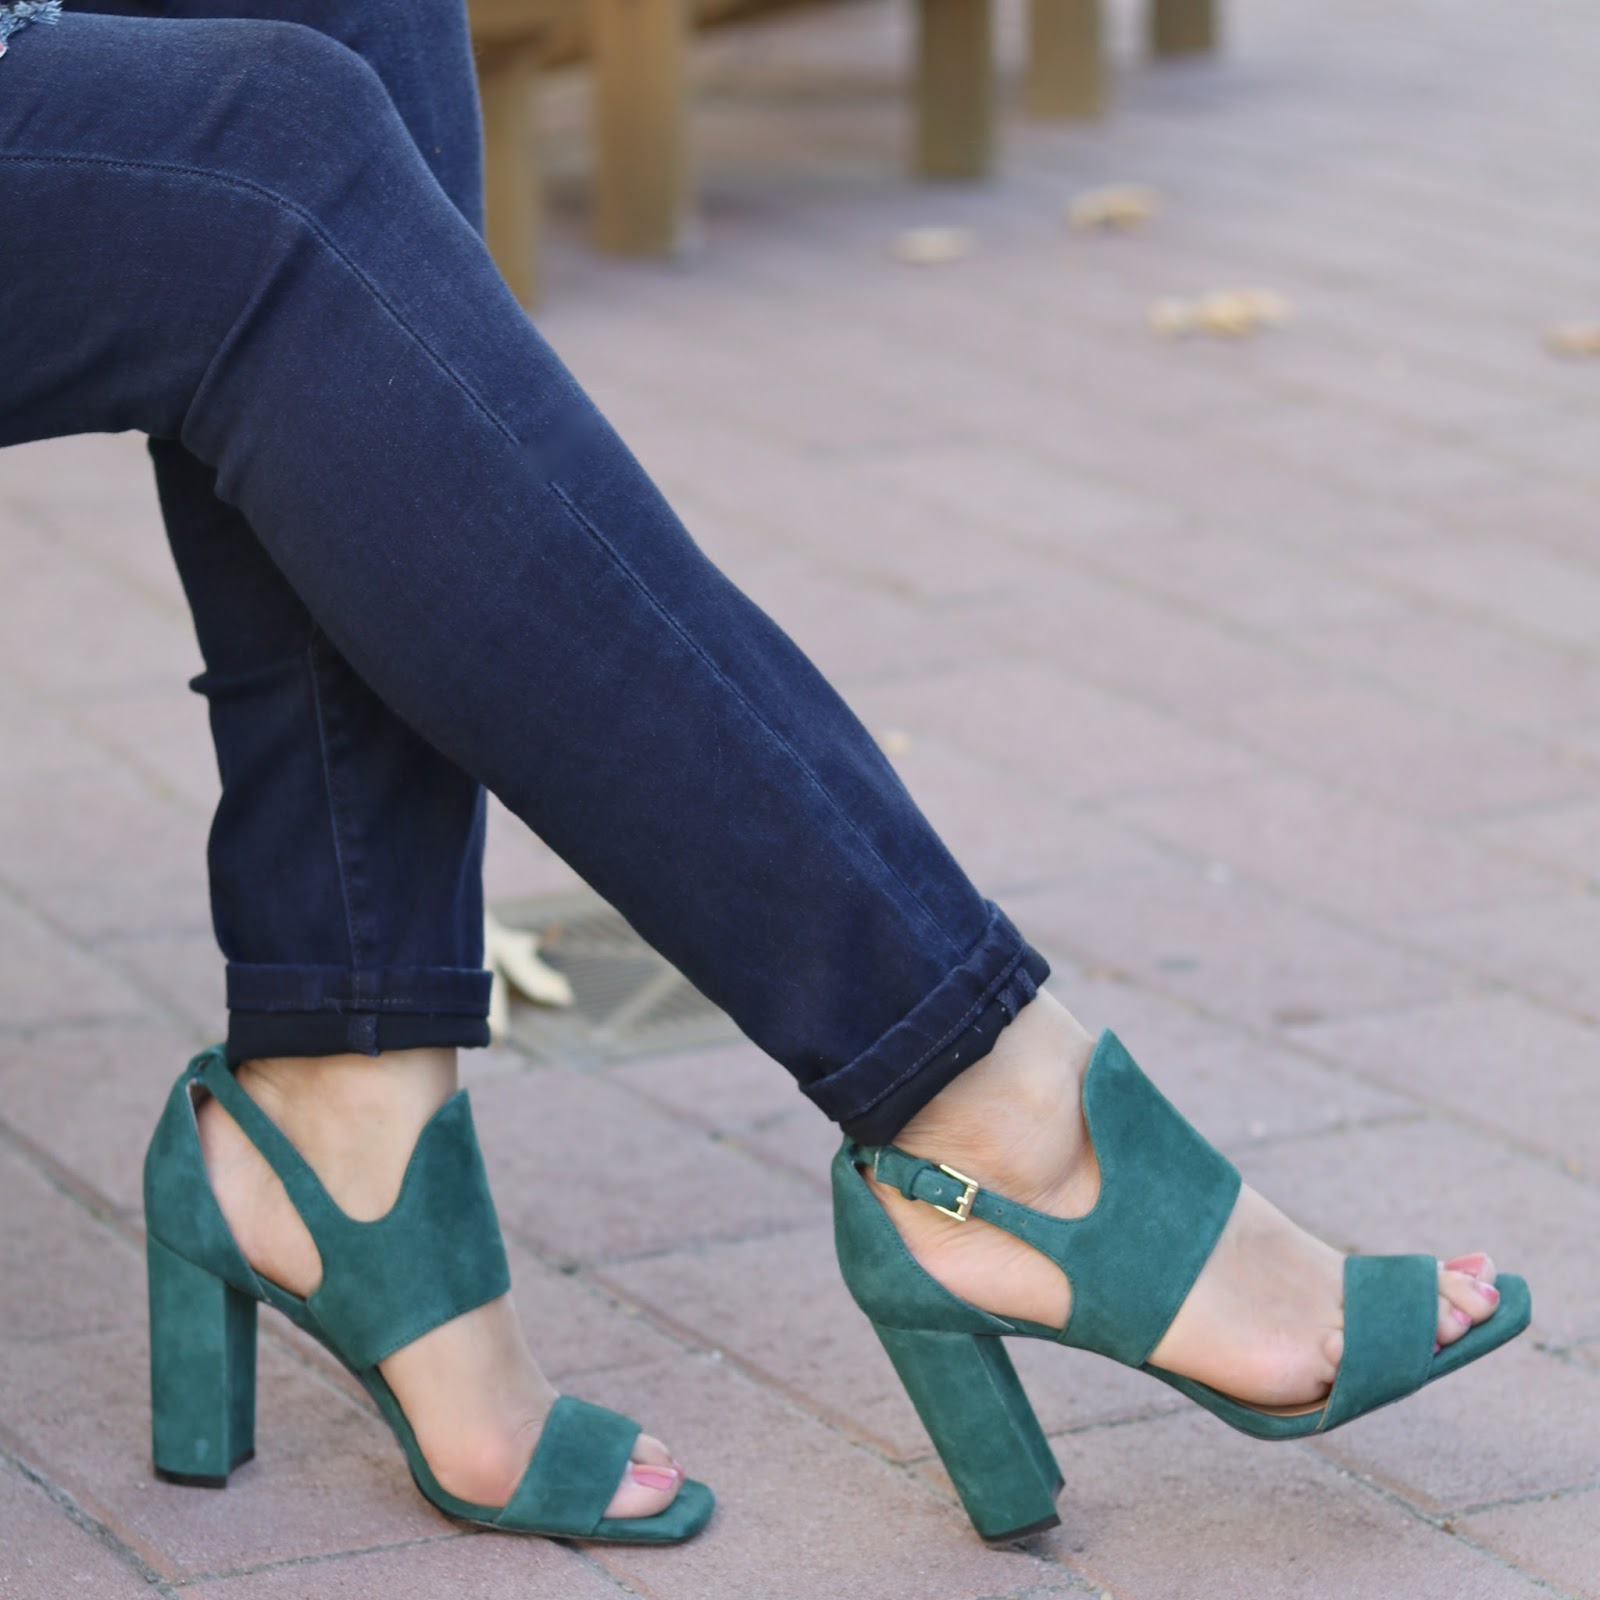 Banana Republic sandal heels, green shoes, banana republic heels, block heeled sandal, tuesday shoesday, shoe inspo